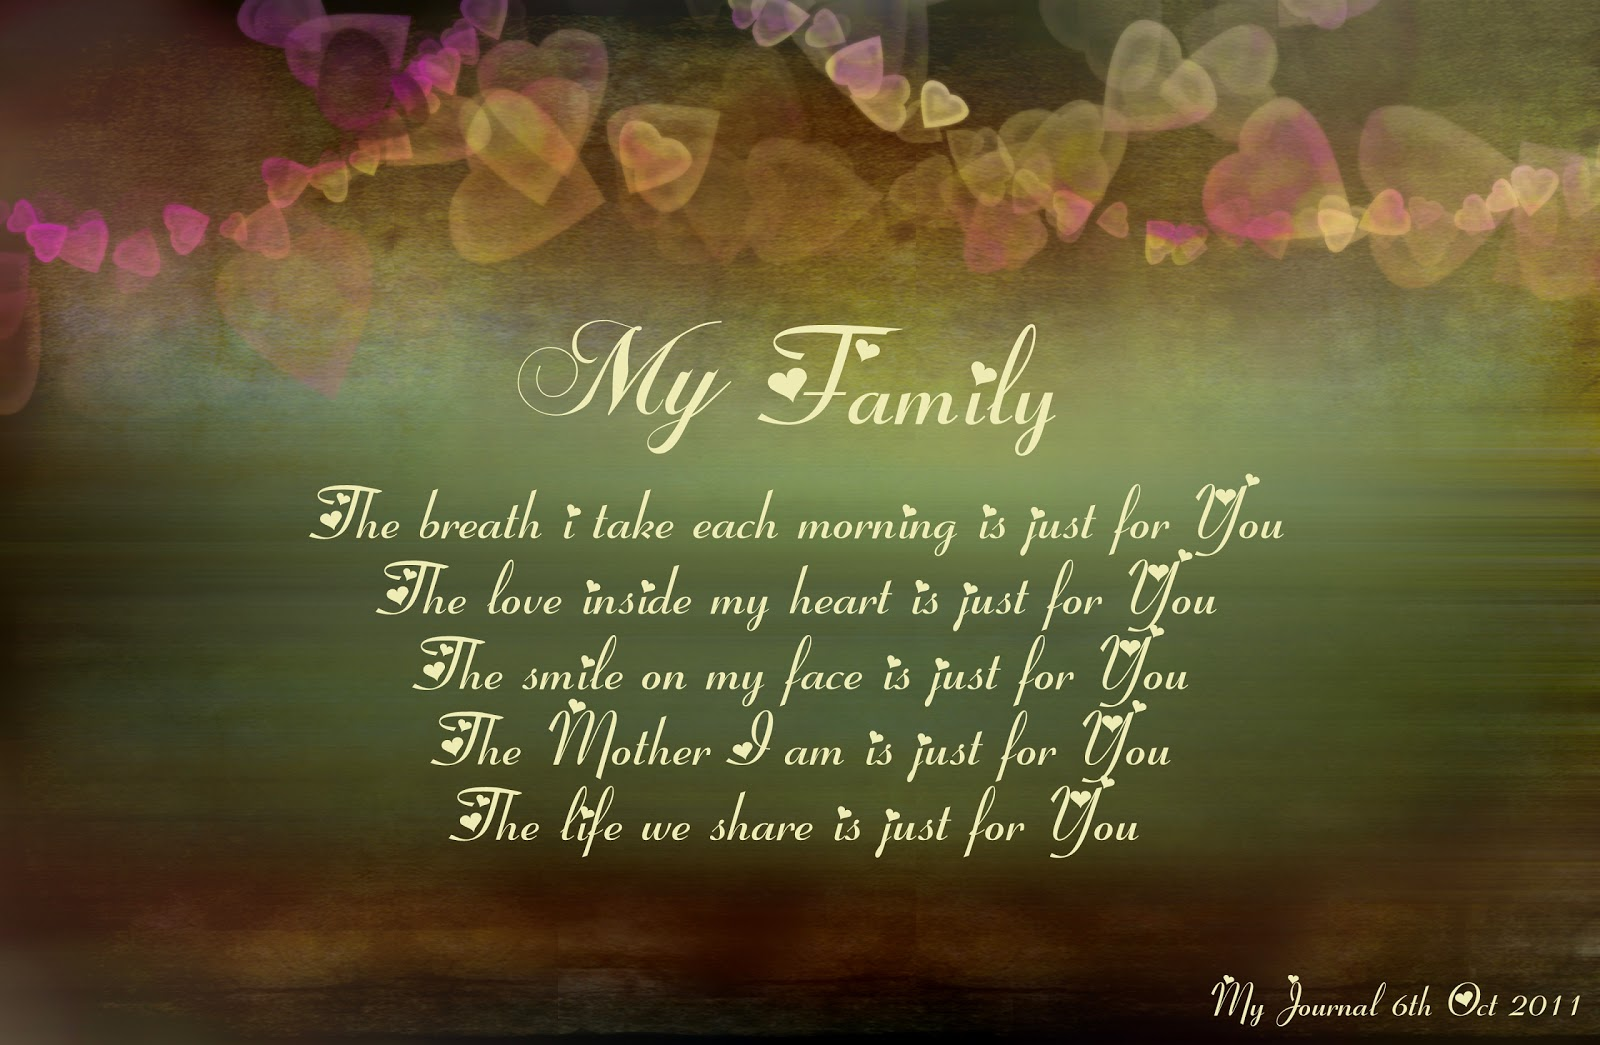 i hope you share some of your family times with me